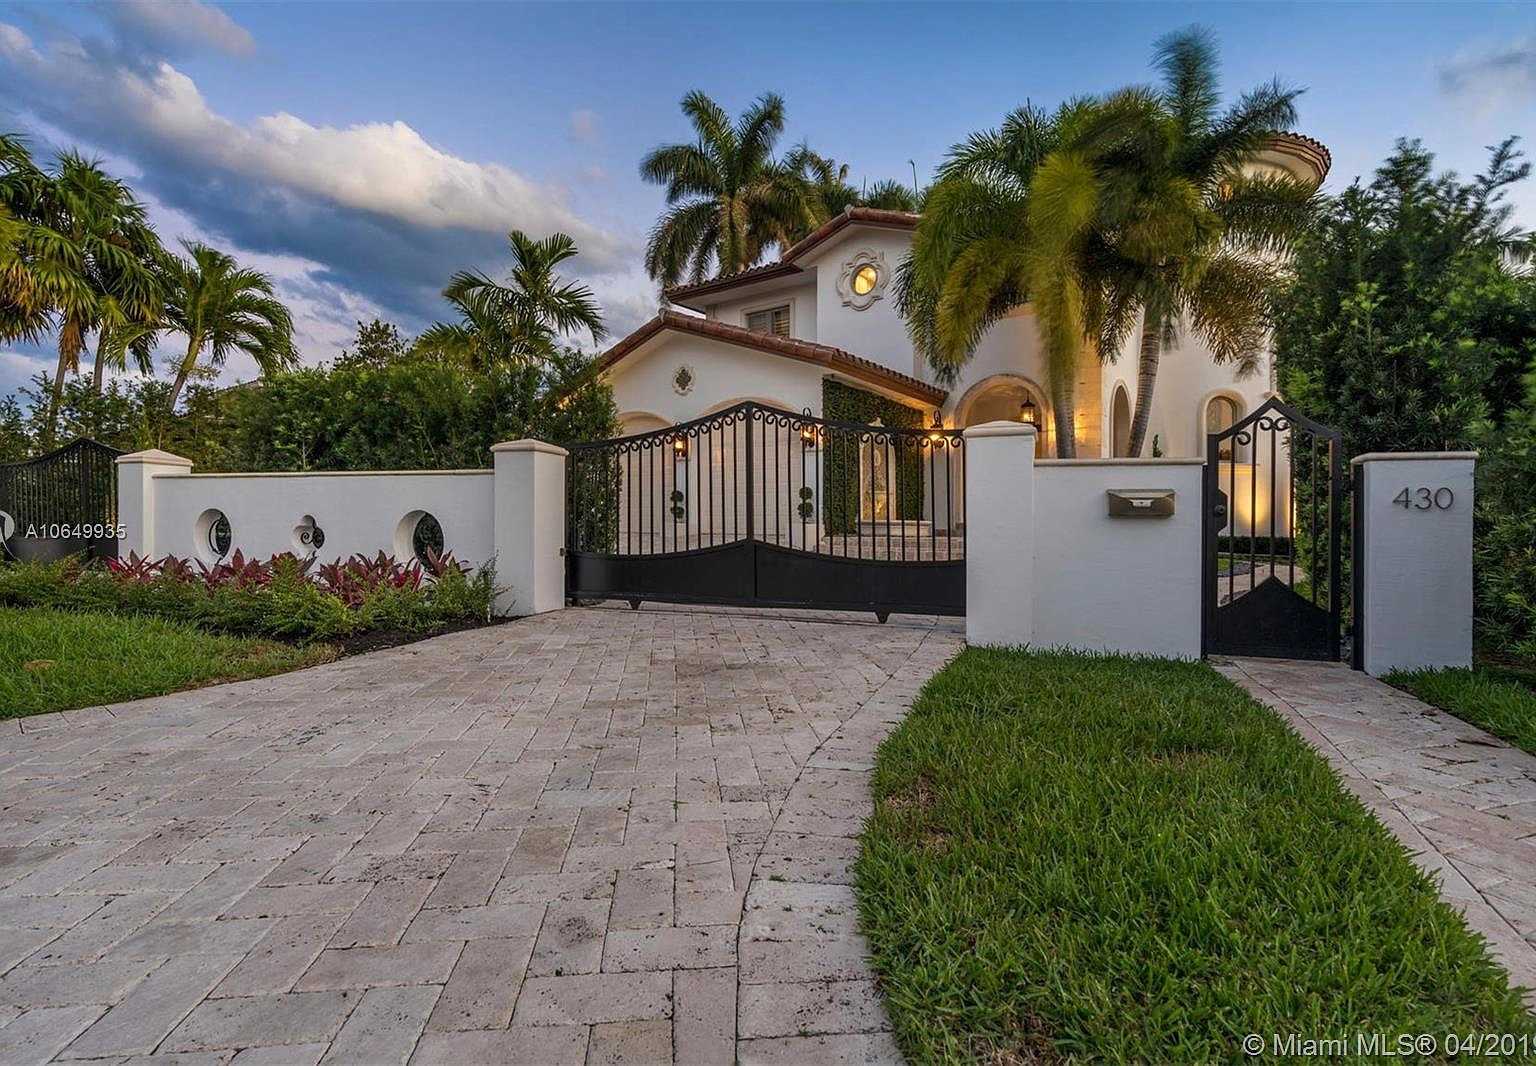 430 W 62nd St, Miami Beach, FL 33140 - $3,975,000 home for sale, house images, photos and pics gallery